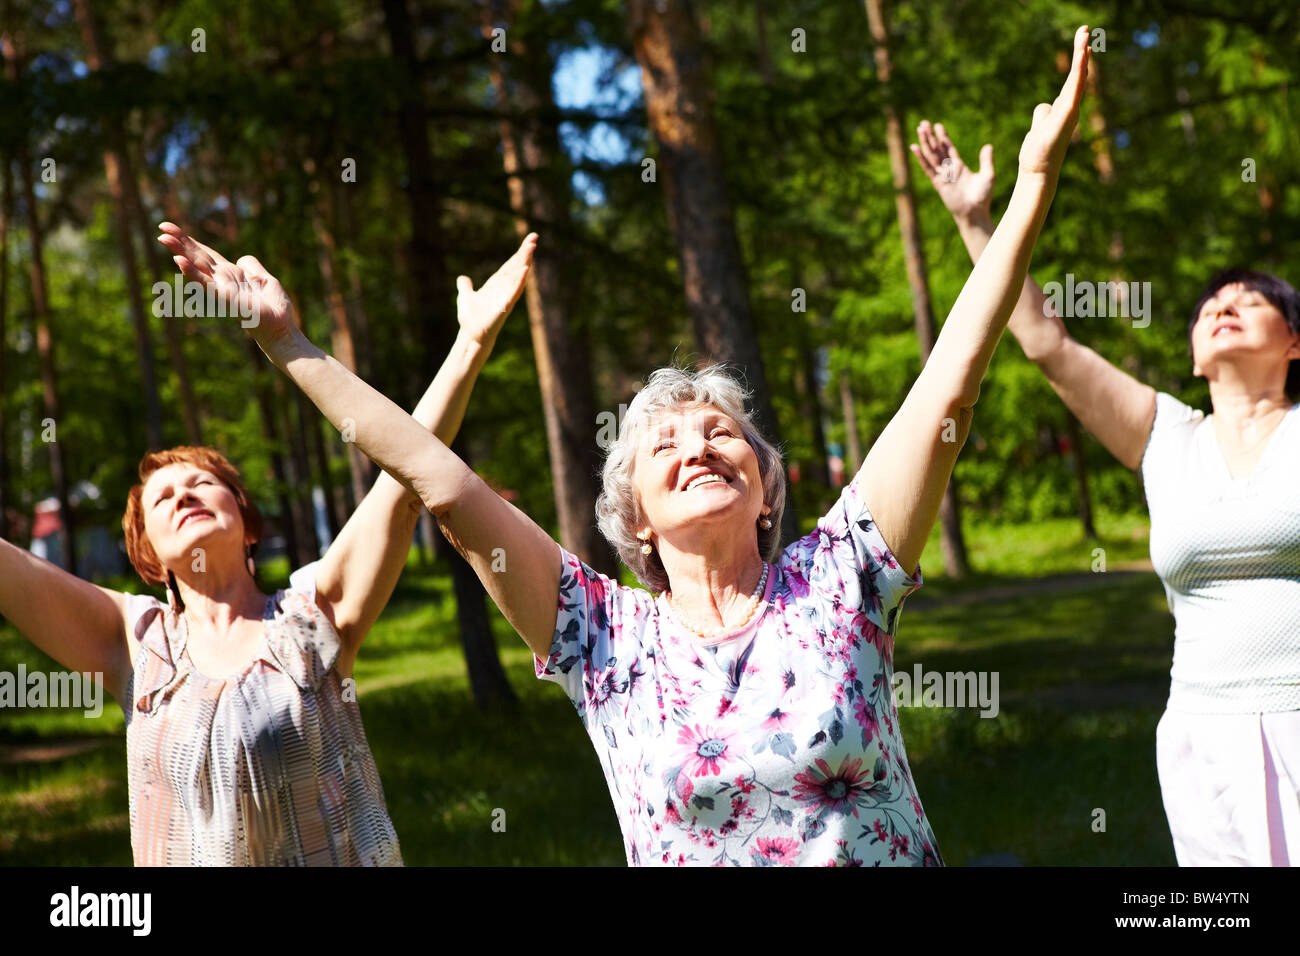 Portrait of aged women with their arms raised in praise - Stock Image